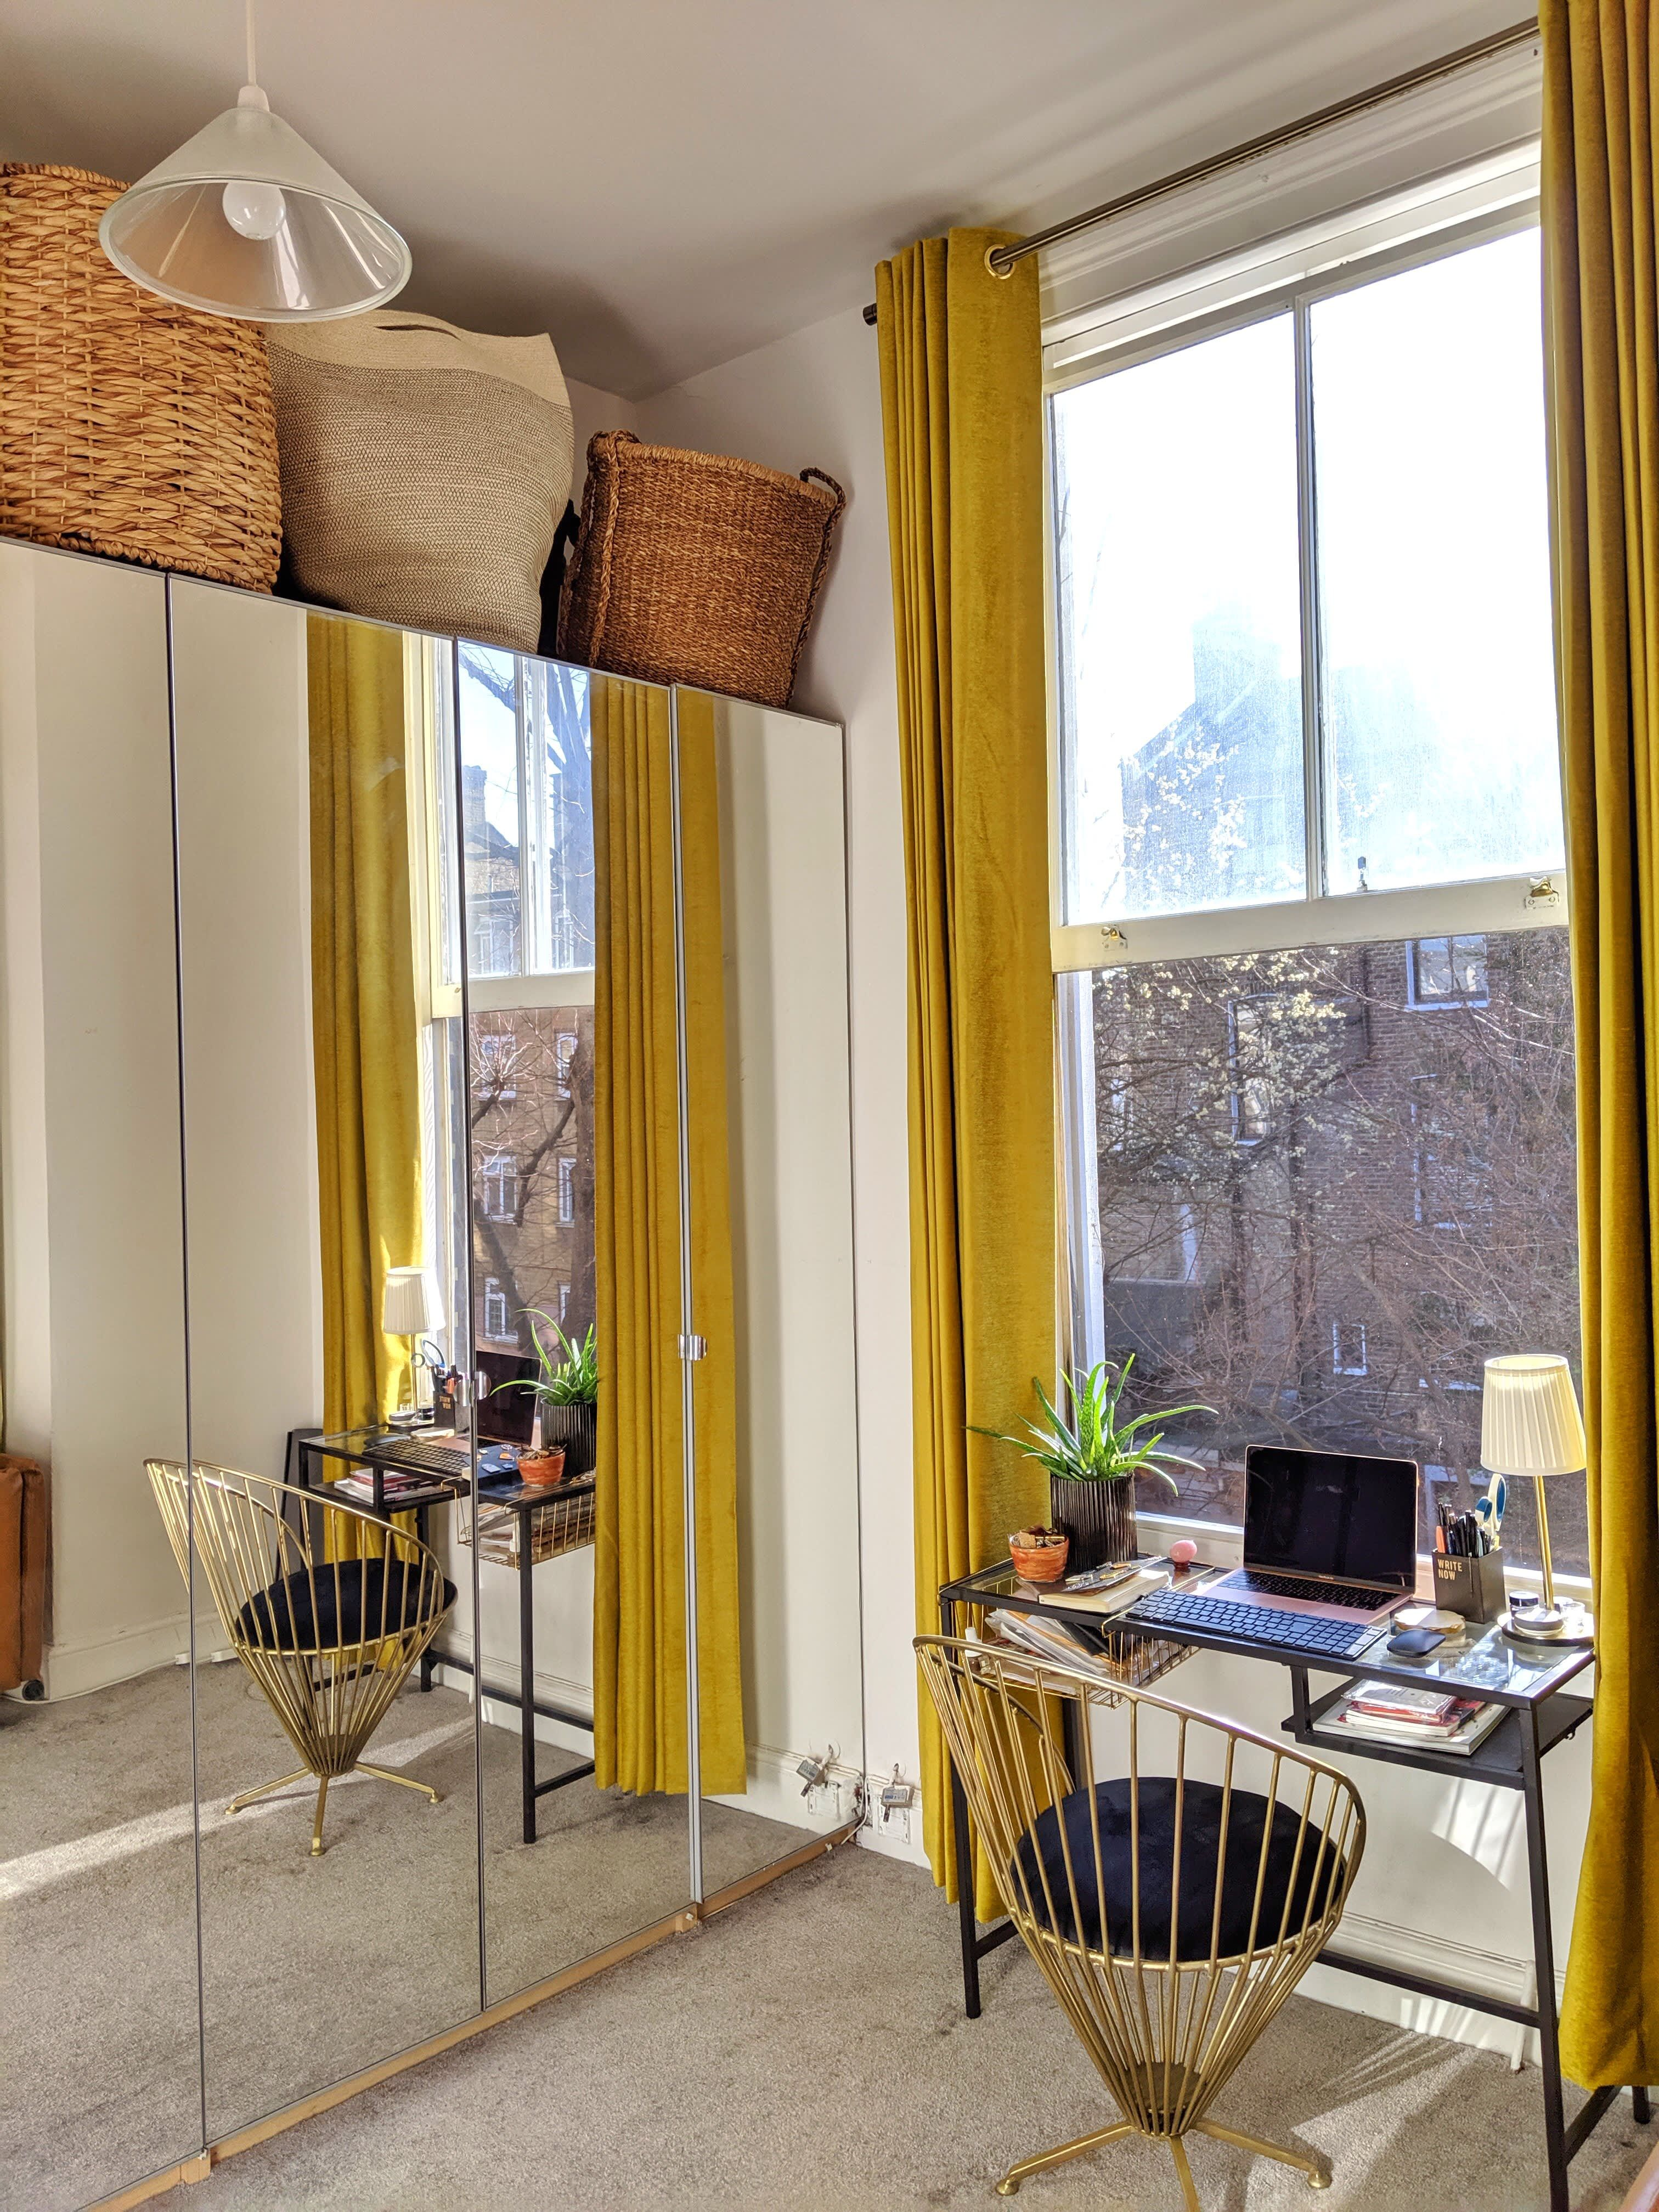 A 400SquareFoot London Studio Apartment Uses All the